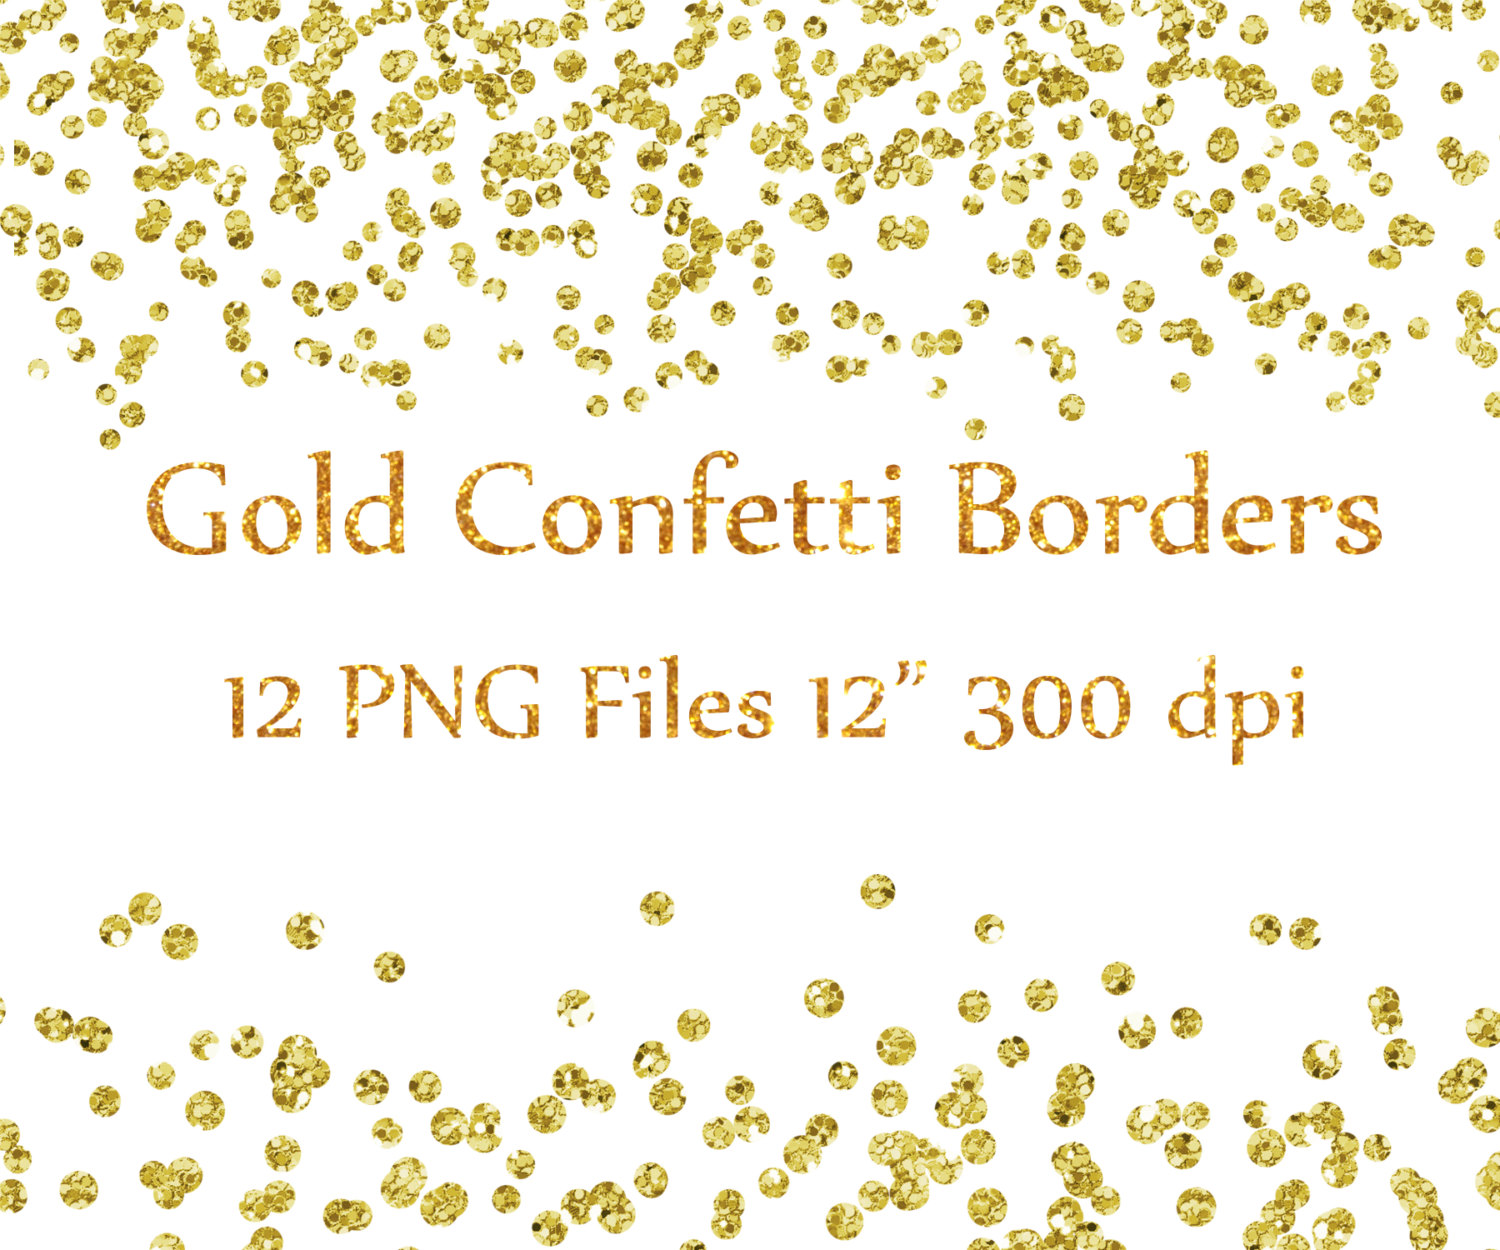 Gold Confetti Borders clipart: GLITTER CONFETTI by.